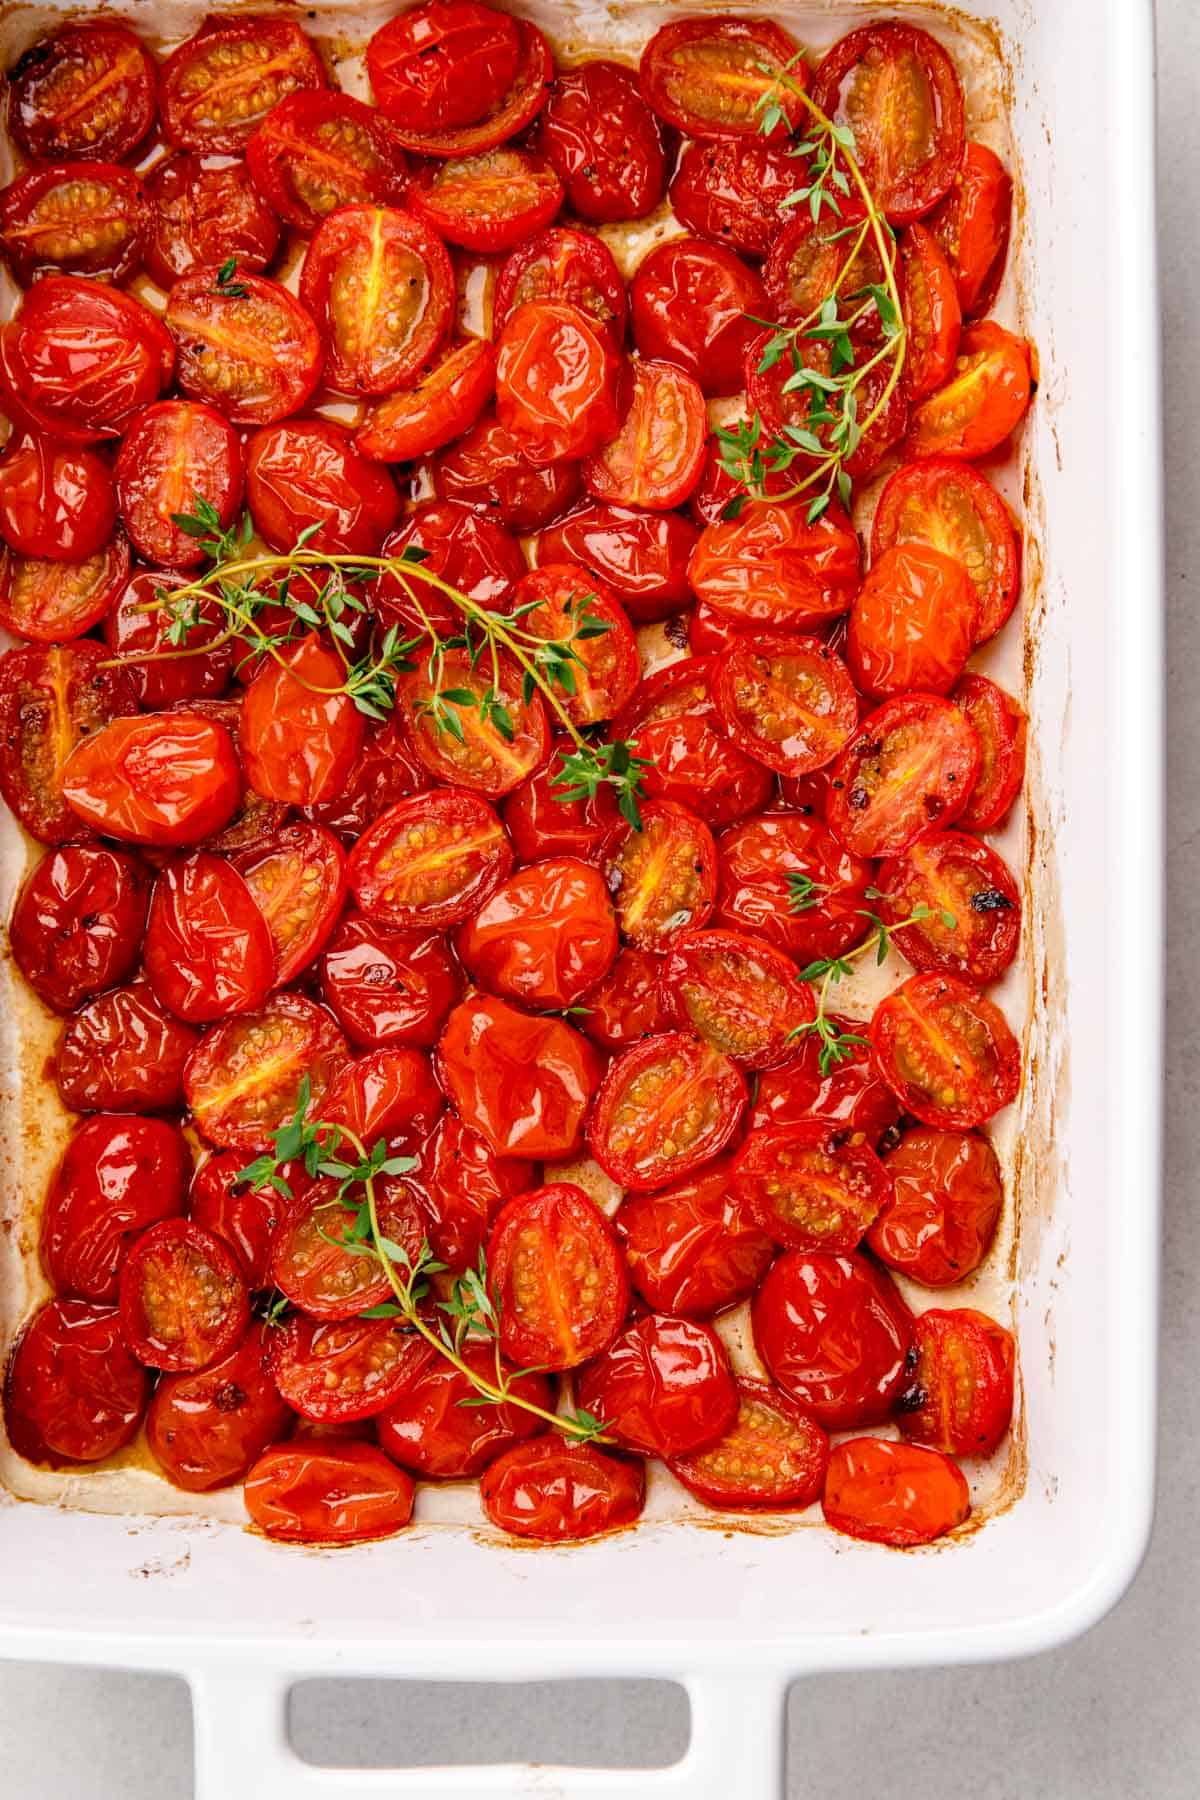 Roasted halved red cherry tomatoes in a white baking pan, topped with fresh thyme.